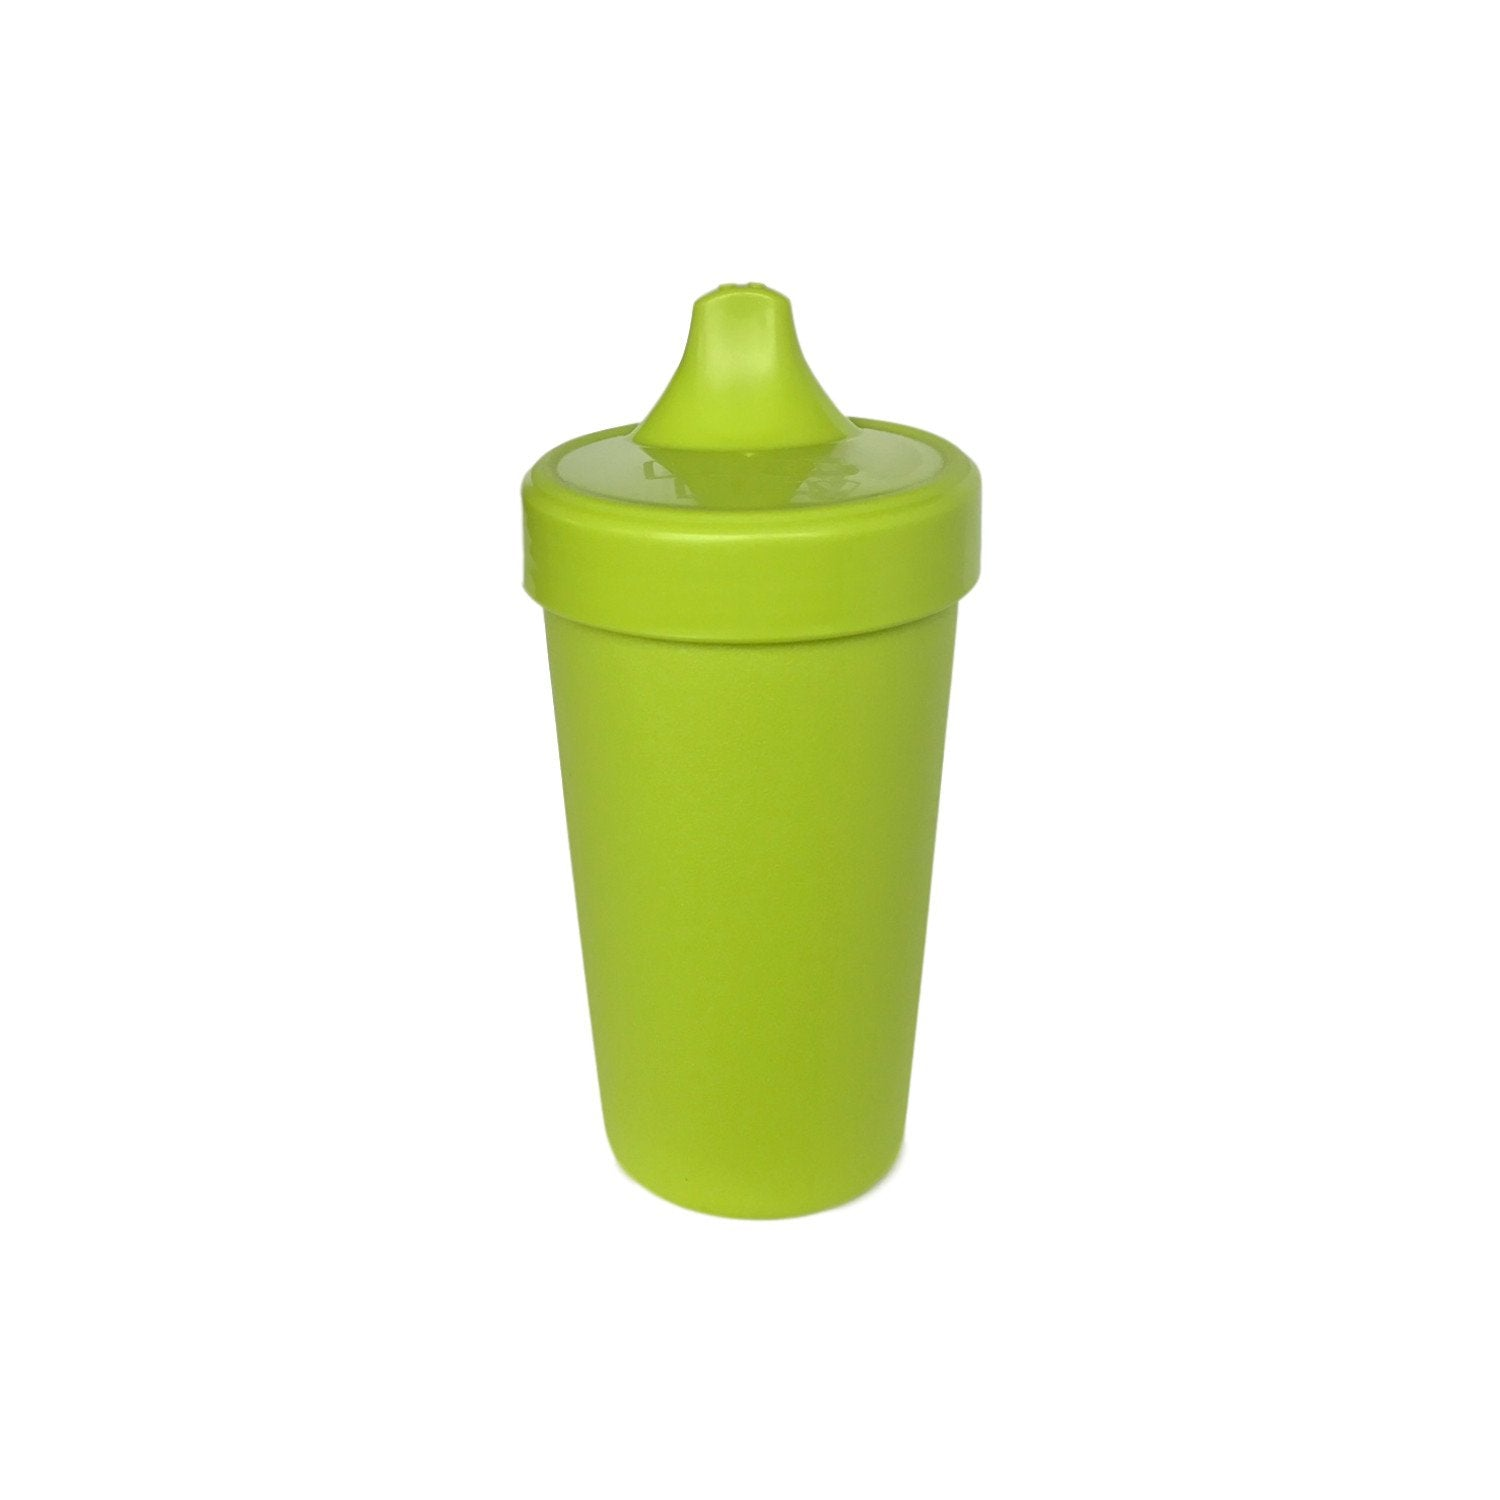 Replay Sippy Cup Replay Sippy Cups Green at Little Earth Nest Eco Shop